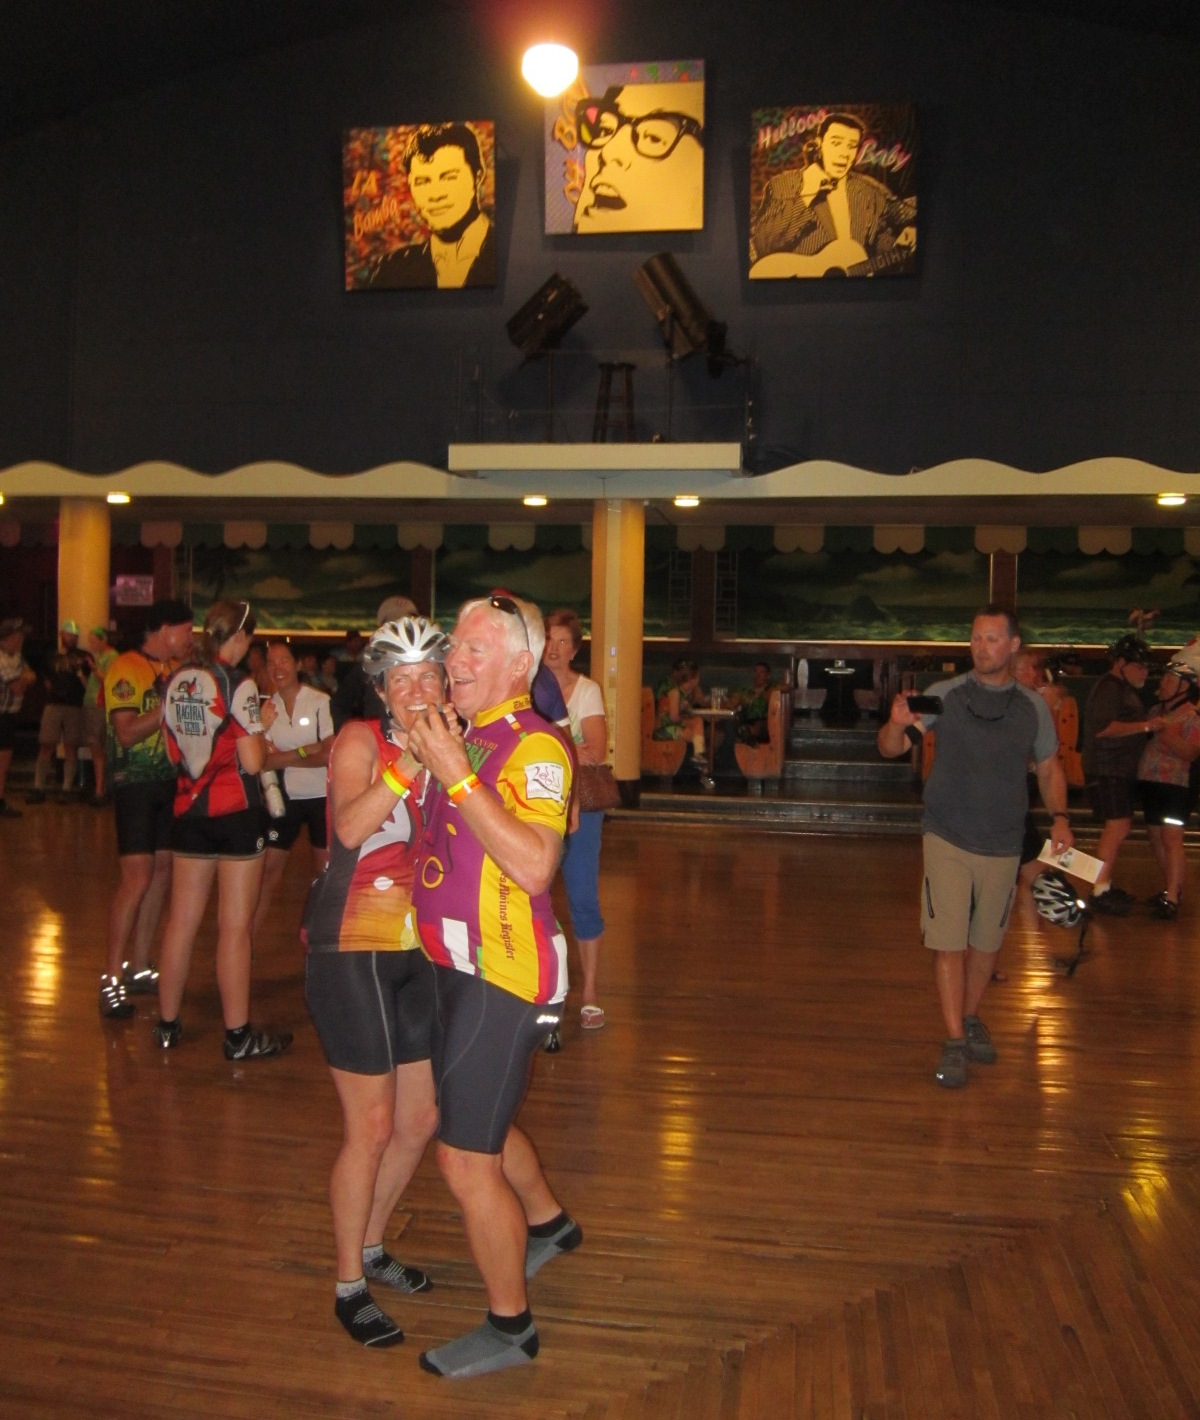 Dennis Swift & Deb Aslett of Boise dance at Surf July 23.JPG